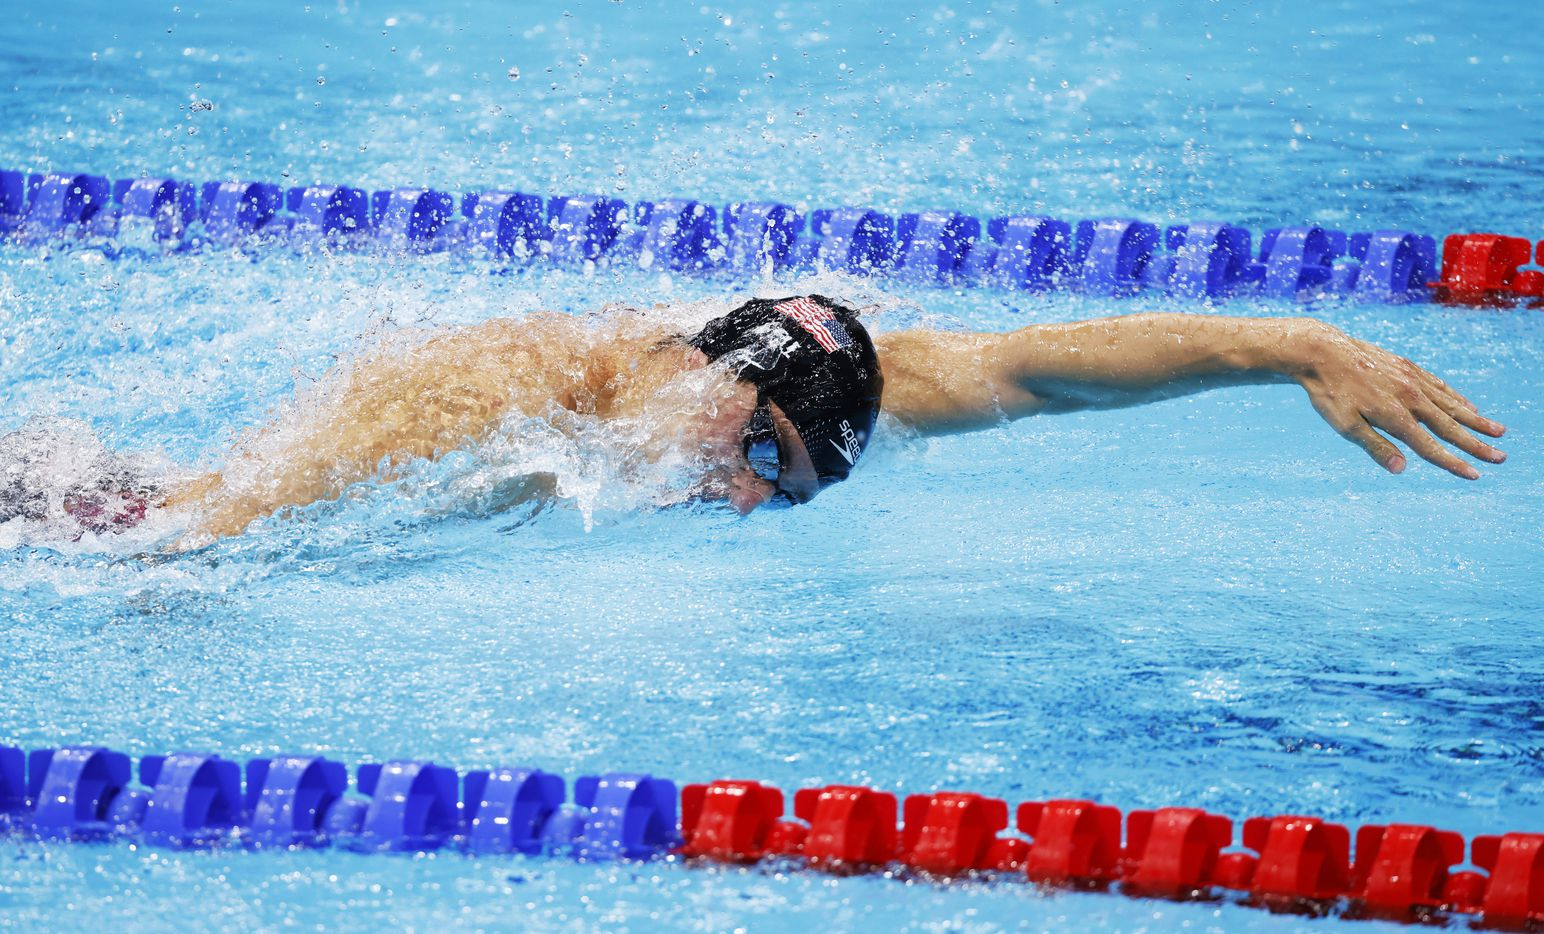 USA's Zach Apple competes in the men's 4x100 meter medley relay final during the postponed 2020 Tokyo Olympics at Tokyo Aquatics Centre, on Sunday, August 1, 2021, in Tokyo, Japan. USA earned a gold medal, setting a new world record with a time of 3:26.78. (Vernon Bryant/The Dallas Morning News)